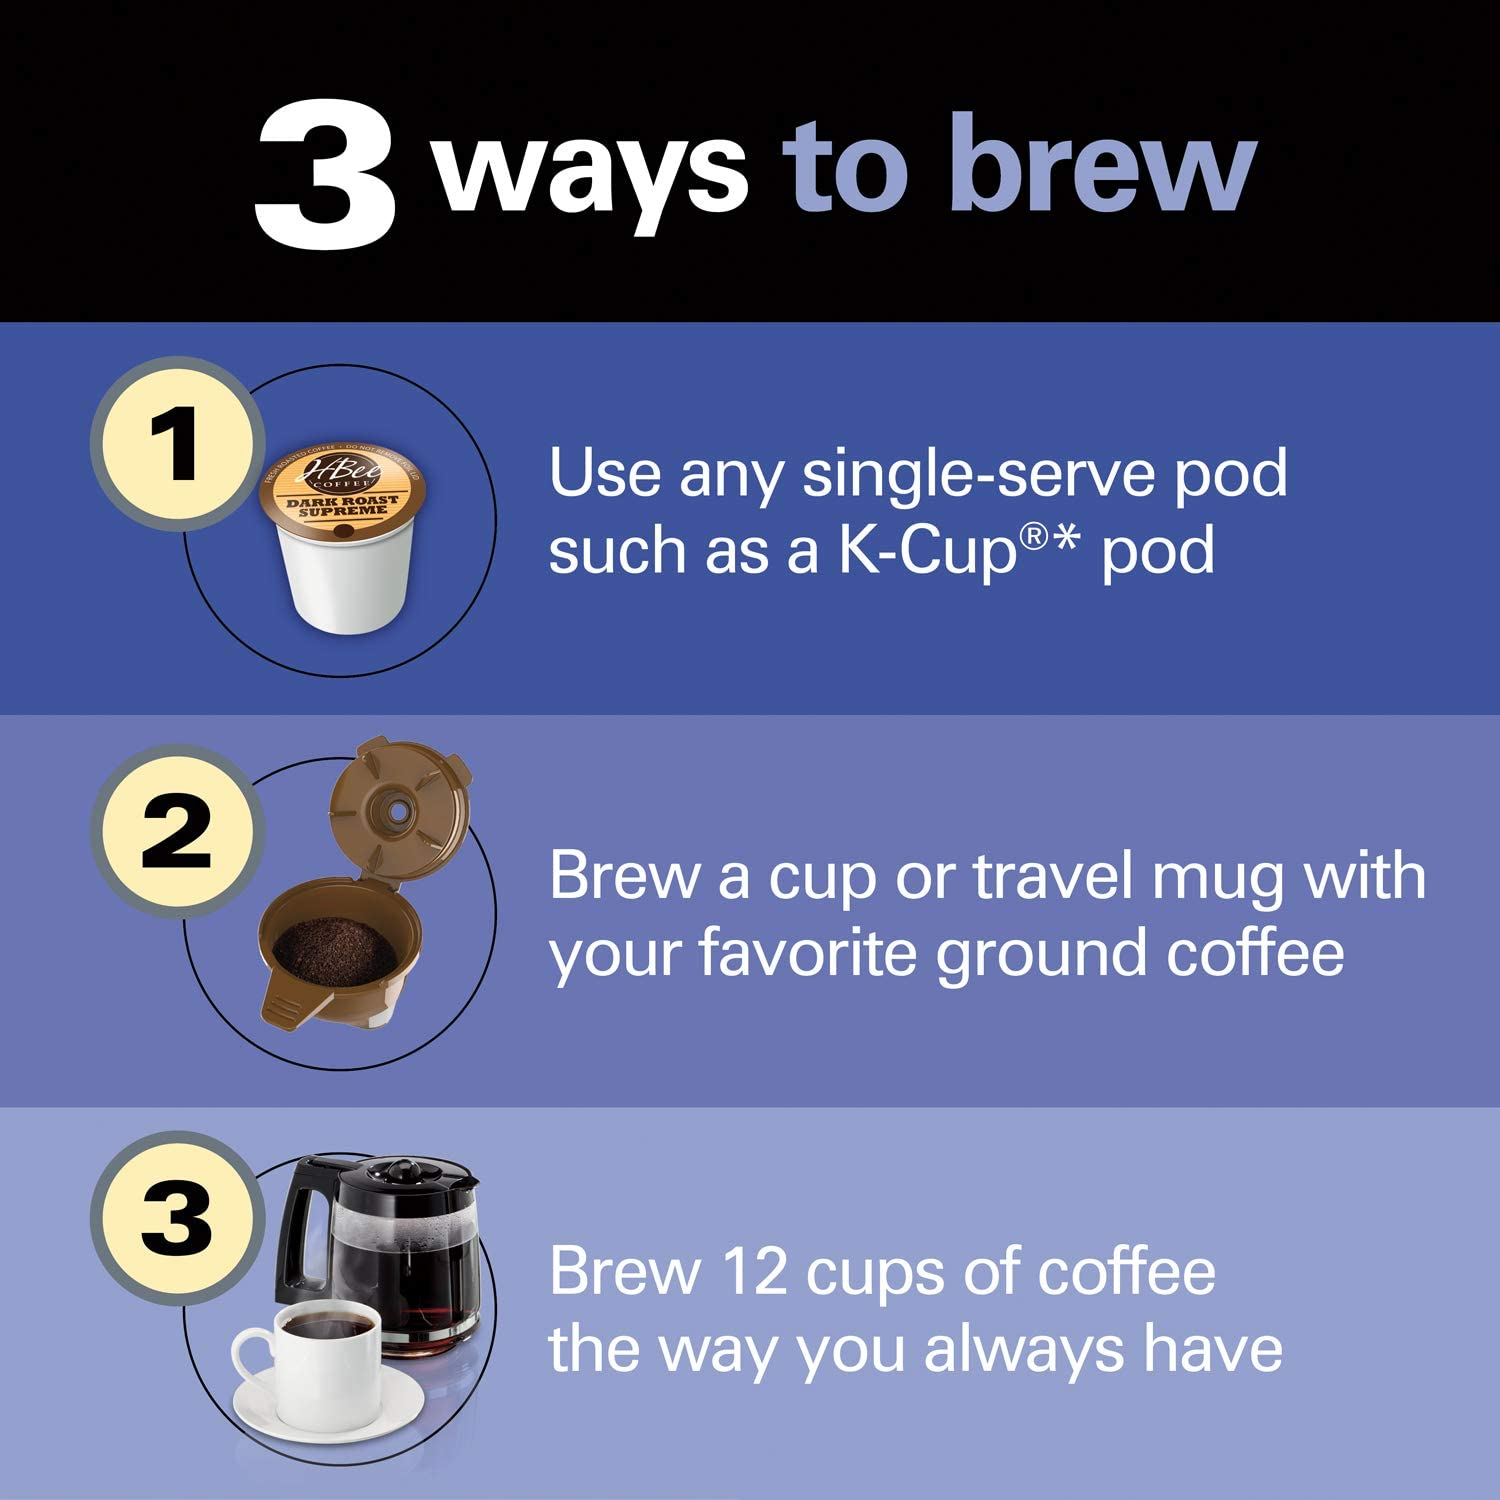 Hamilton Beach FlexBrew Trio Coffee Maker, 2-Way Single Serve & Full 12c Pot Compatible with K-Cup Pods or Grounds, Combo, Black